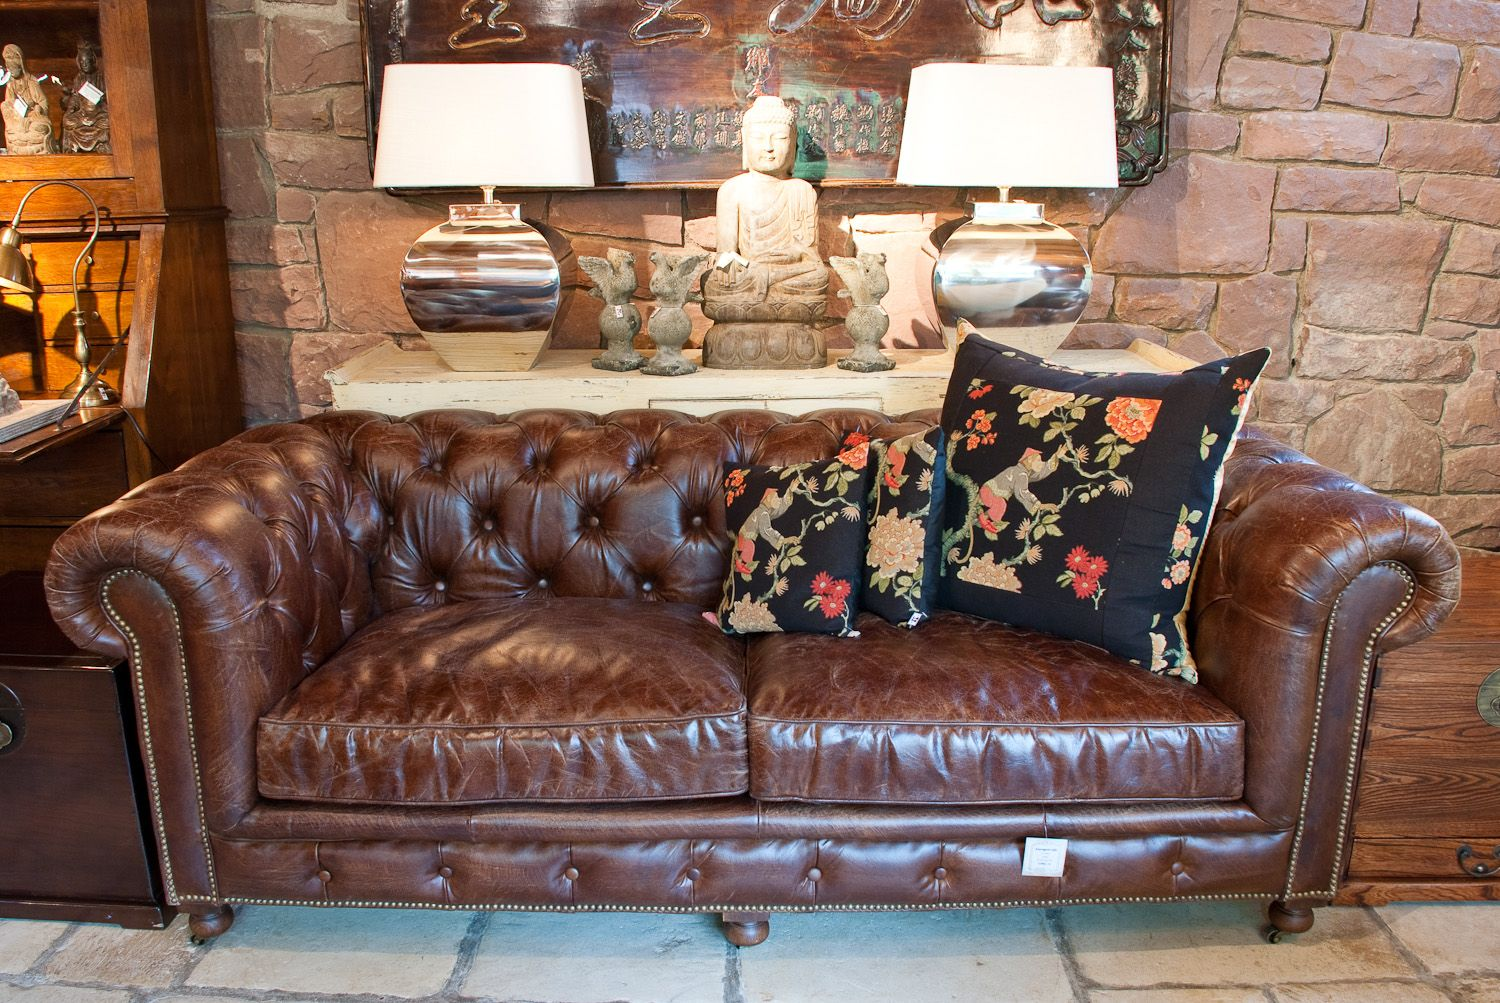 Dark Brown Leather Sofa With Floral Cushion Decorative Buddha Statue And Unique Table Lamp Dark Brown Leather Sofa Brown Leather Sofa Floral Cushions